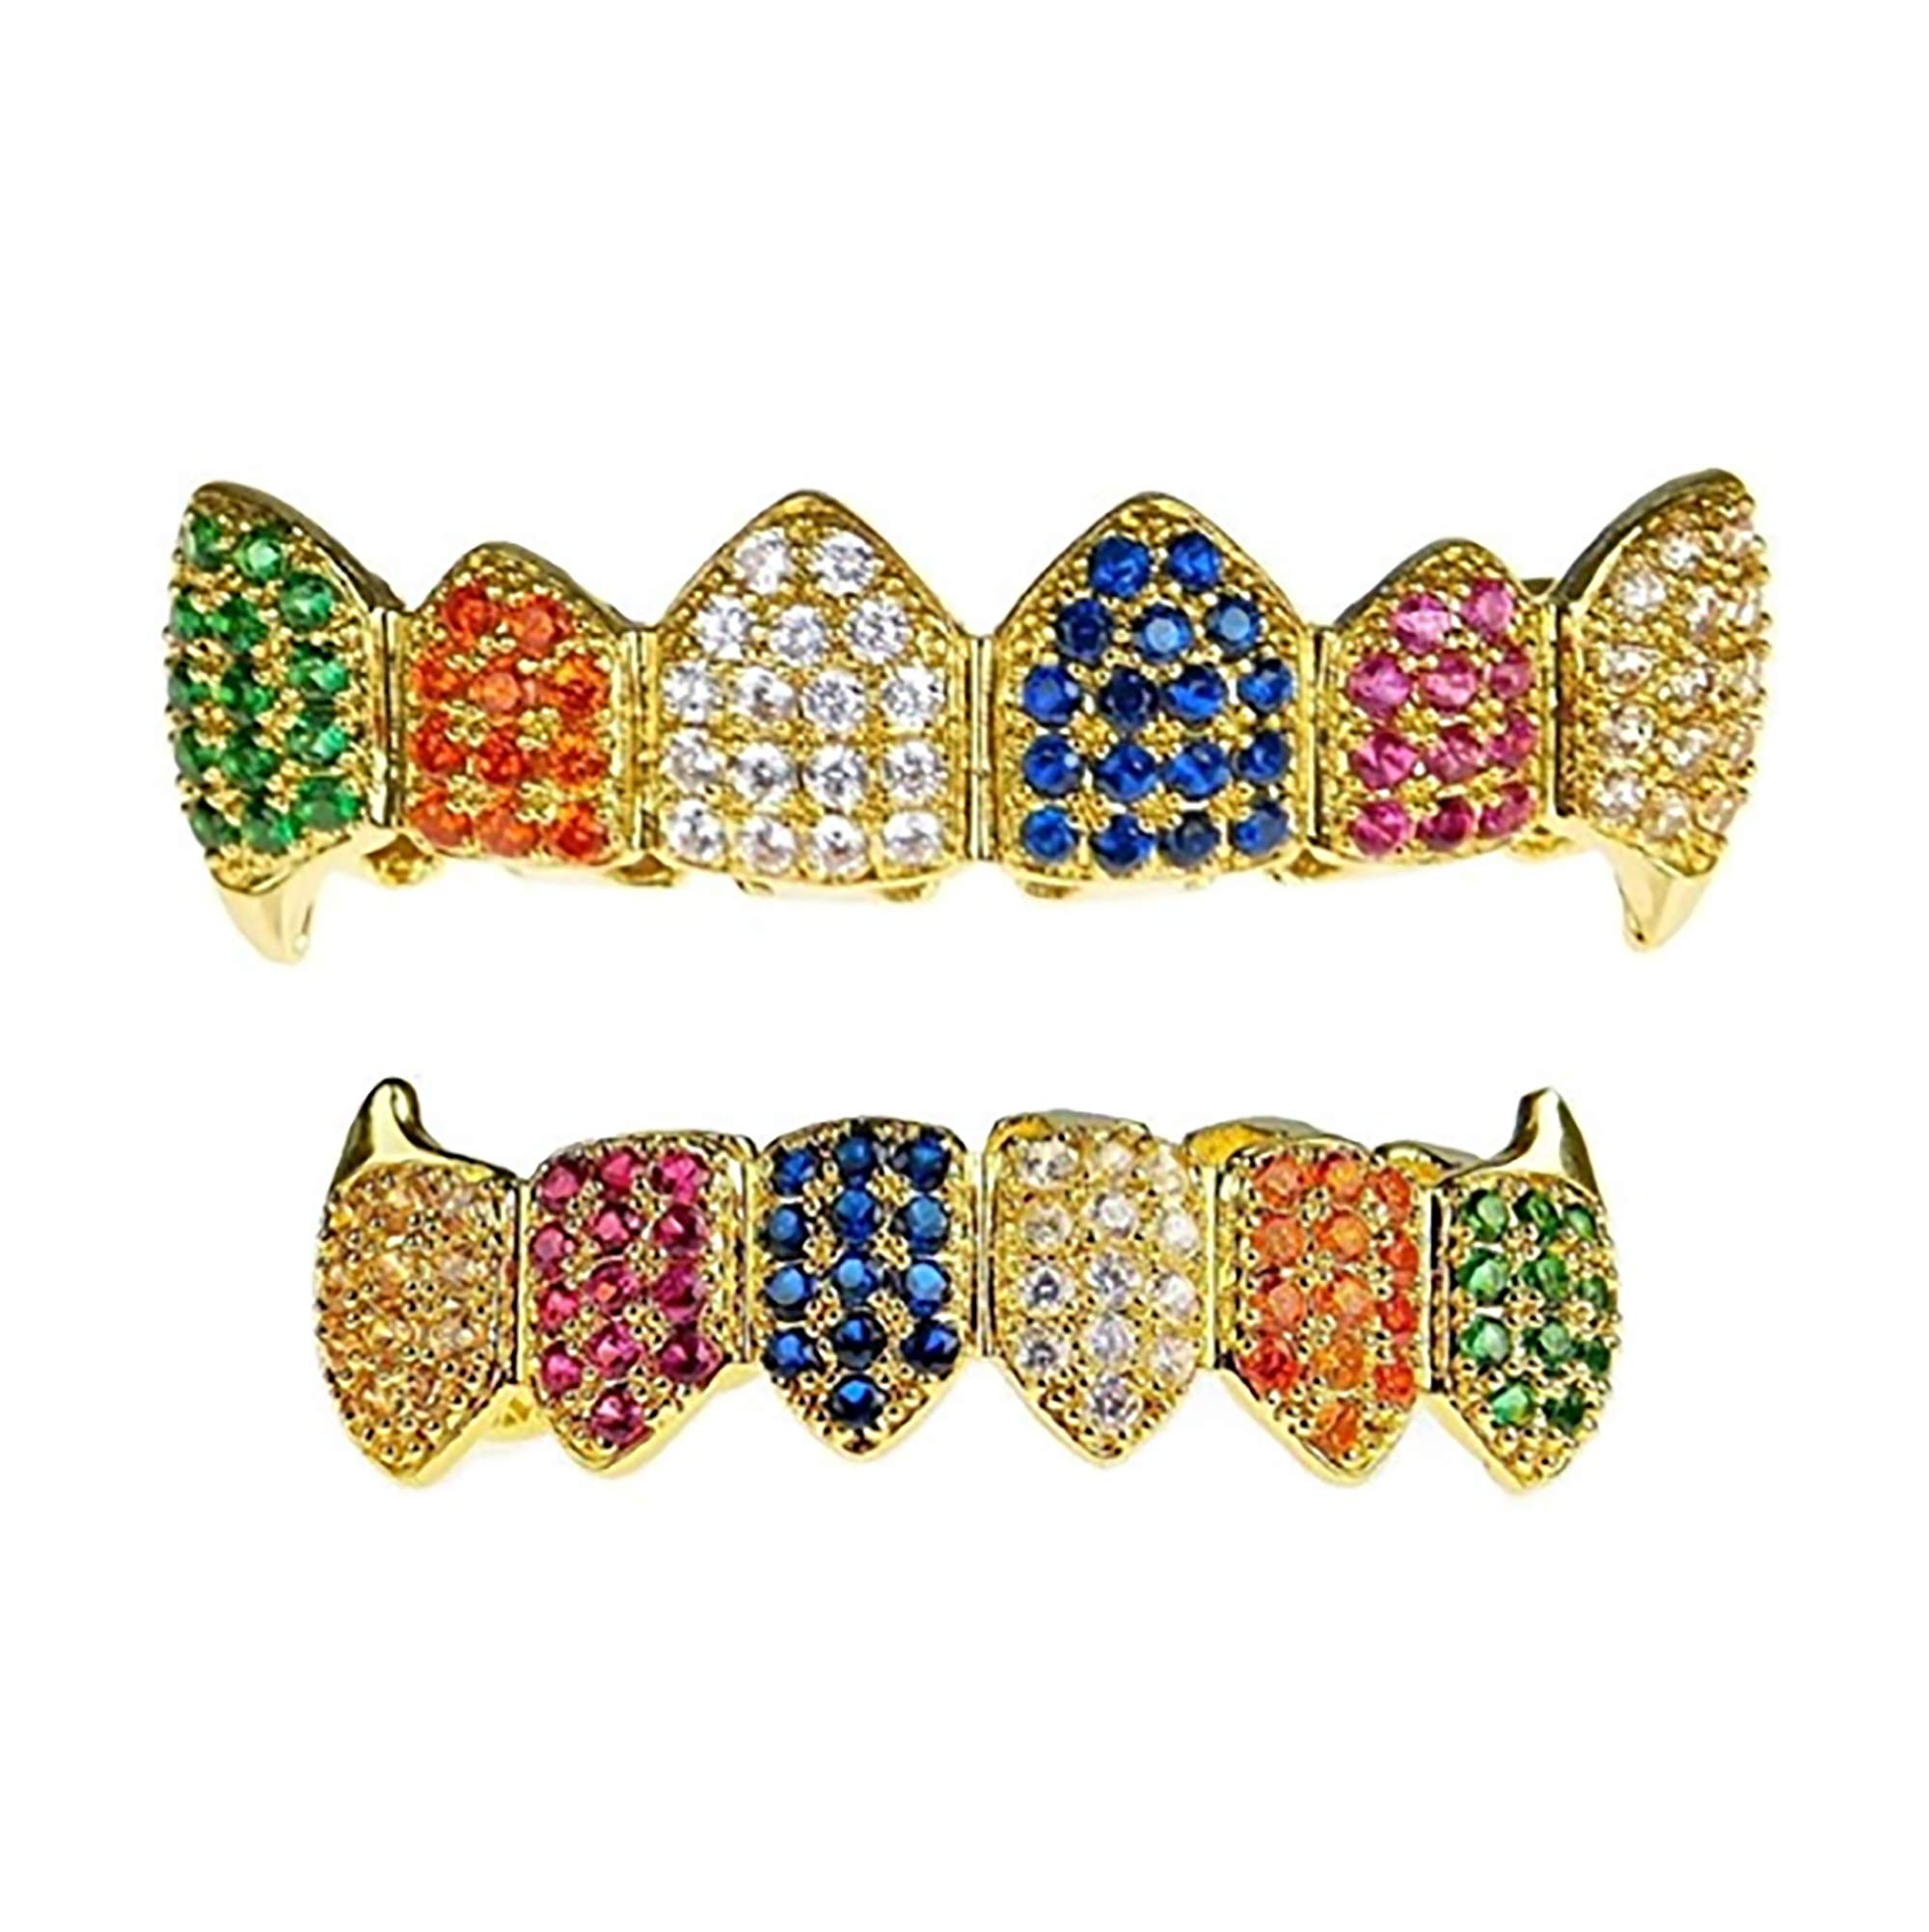 Shop-iGold 18K Gold Plated CZ Cluster Custom Slugs Top Bottom Rainbow Multi Color Grillz Fangs Mouth Teeth Grills Set - Grillz, Teeth Cap, Iced Out Grillz (Top & Bottom Set) by Shop-iGold